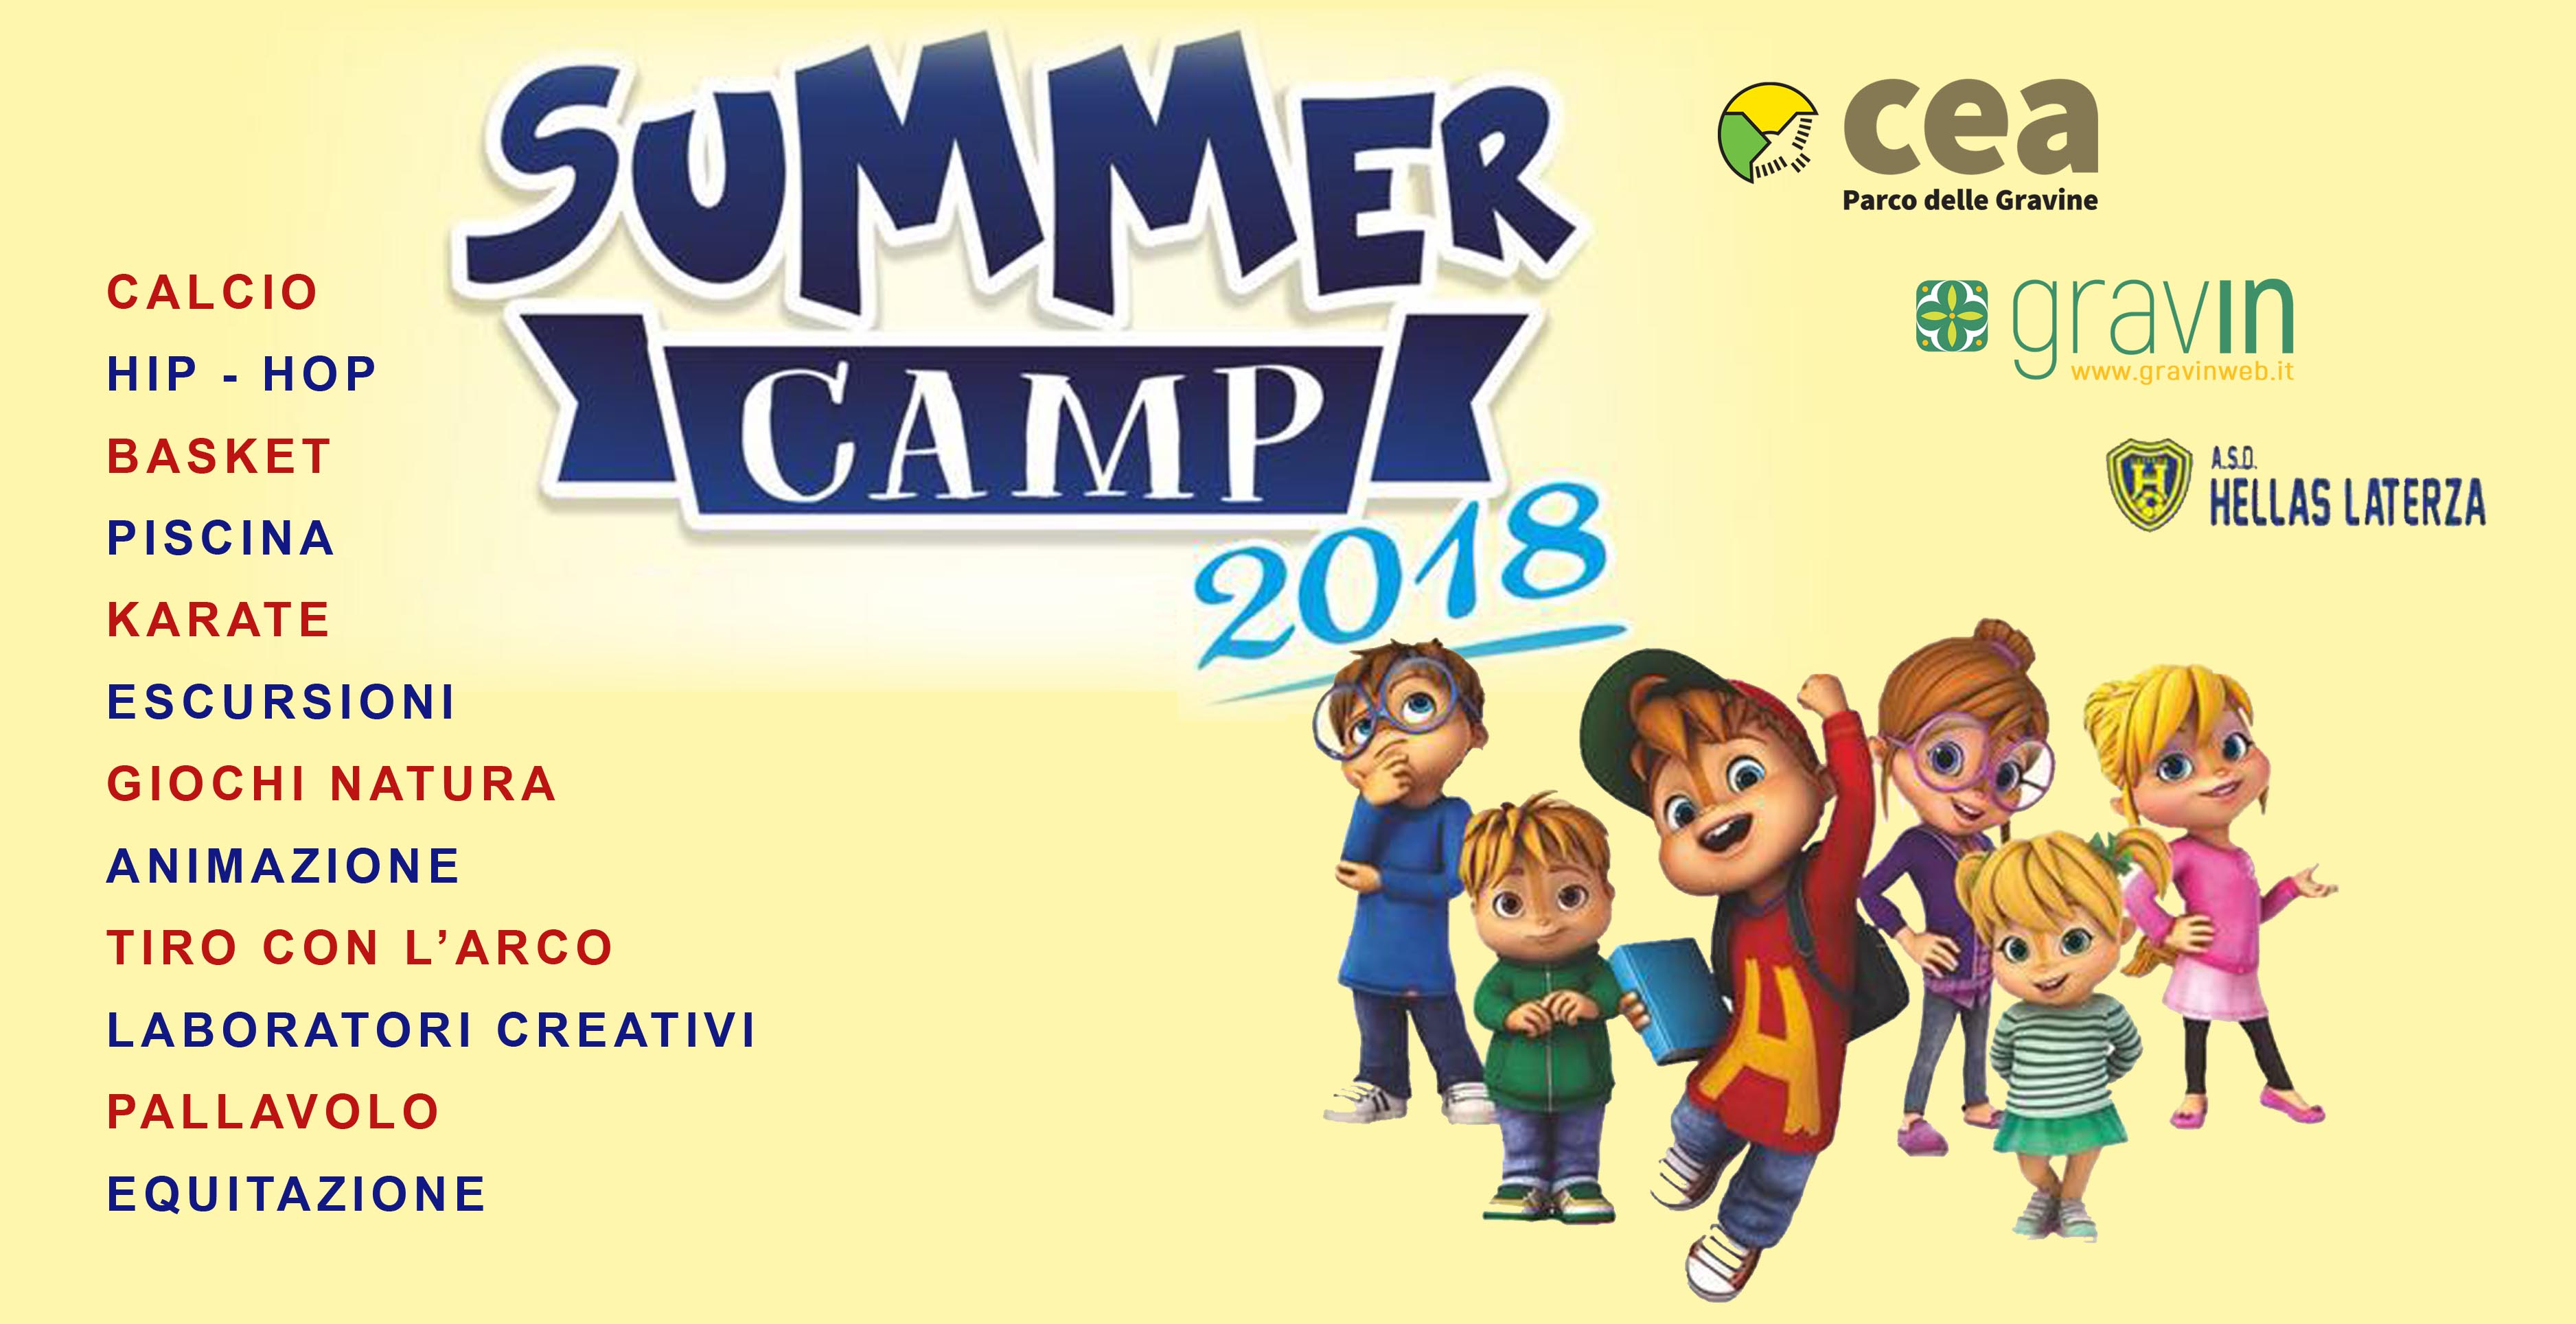 summer camp, campo scuola, terra delle gravine, gravina di laterza, hellas laterza, cea laterza, estate 2018